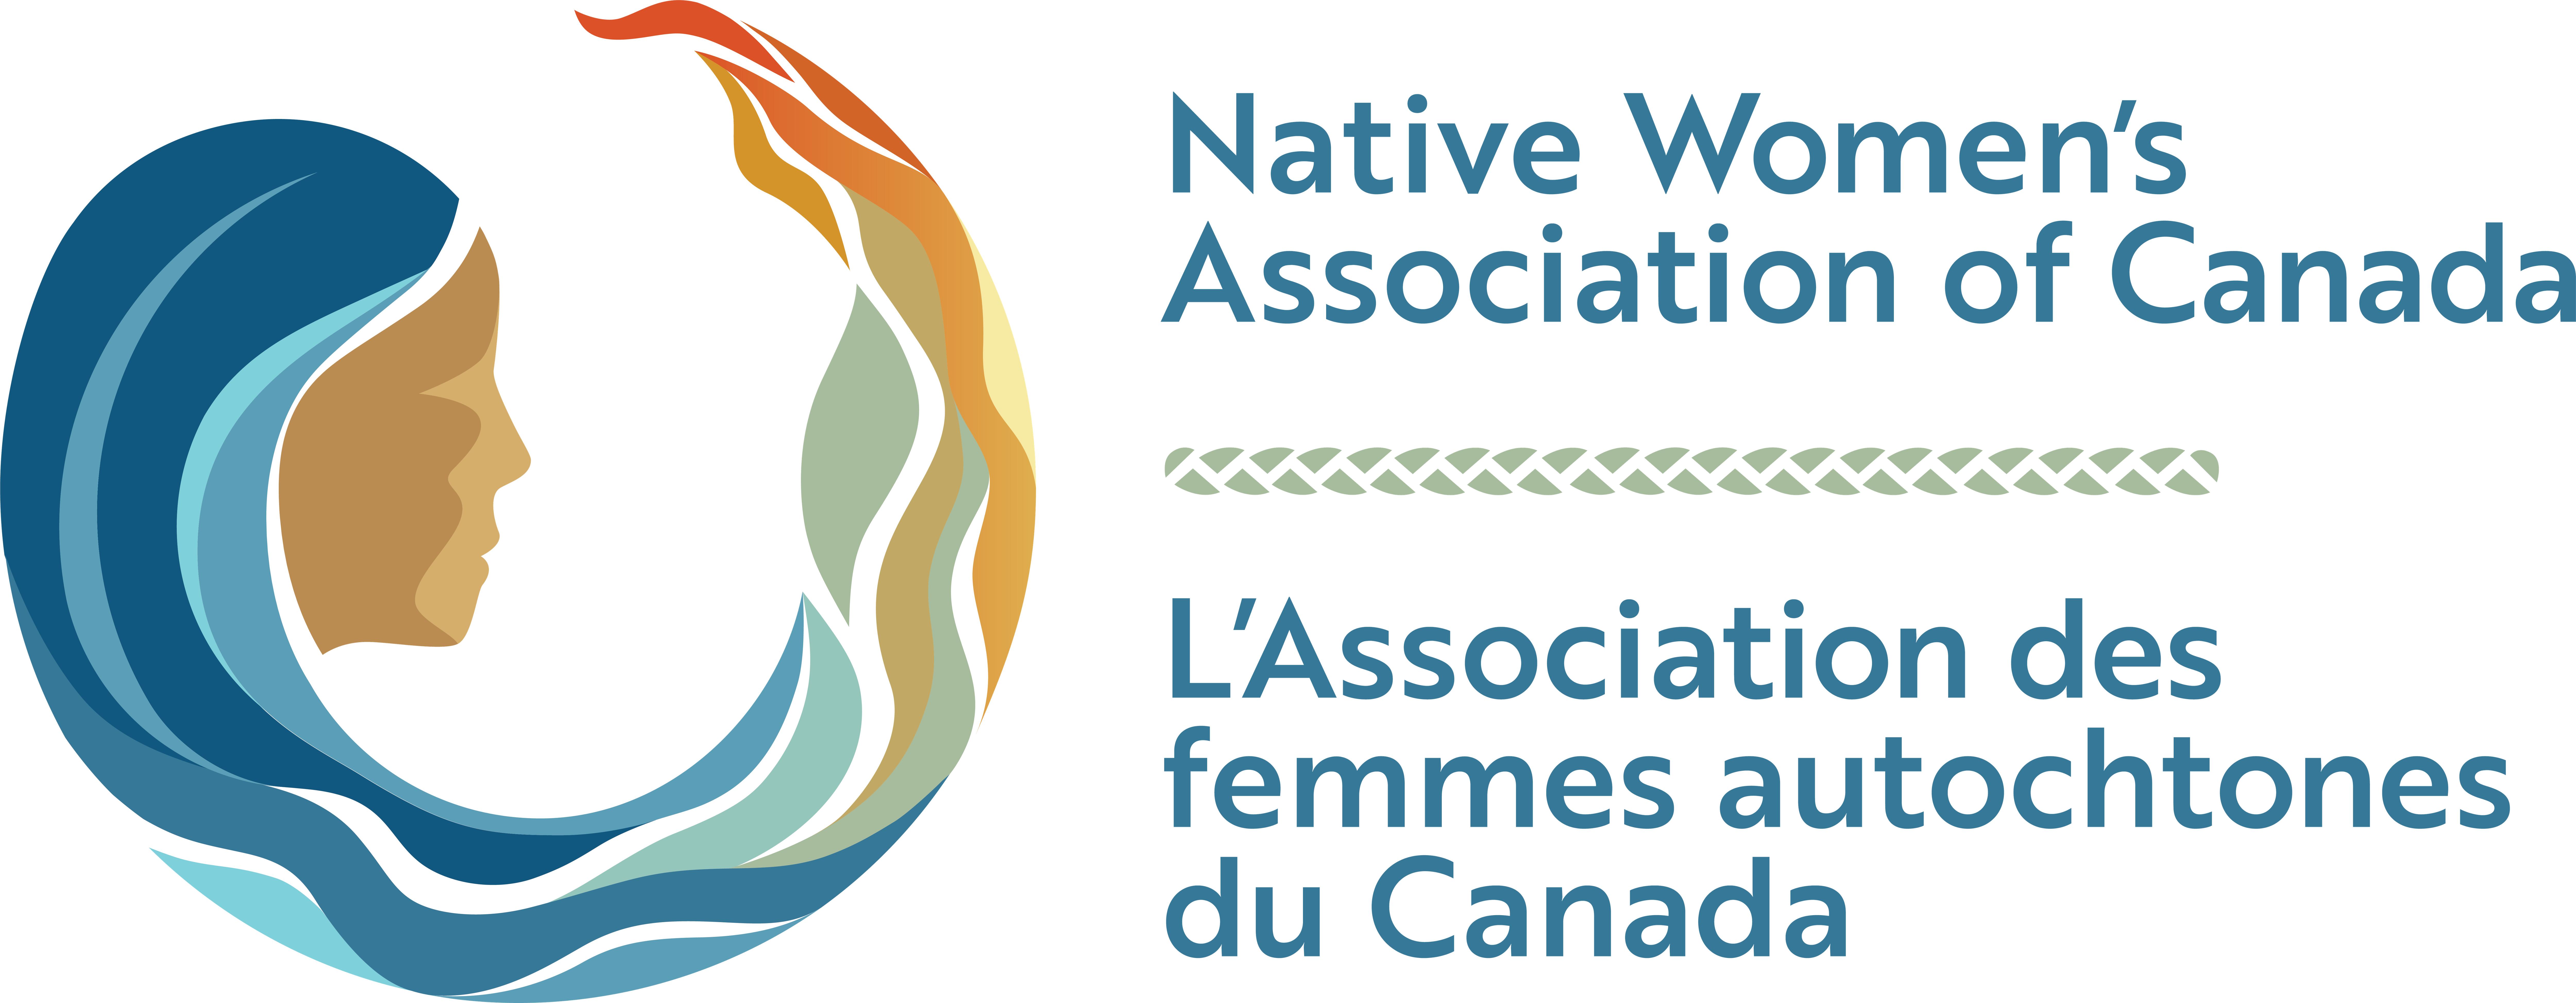 Native Women's Association of Canada